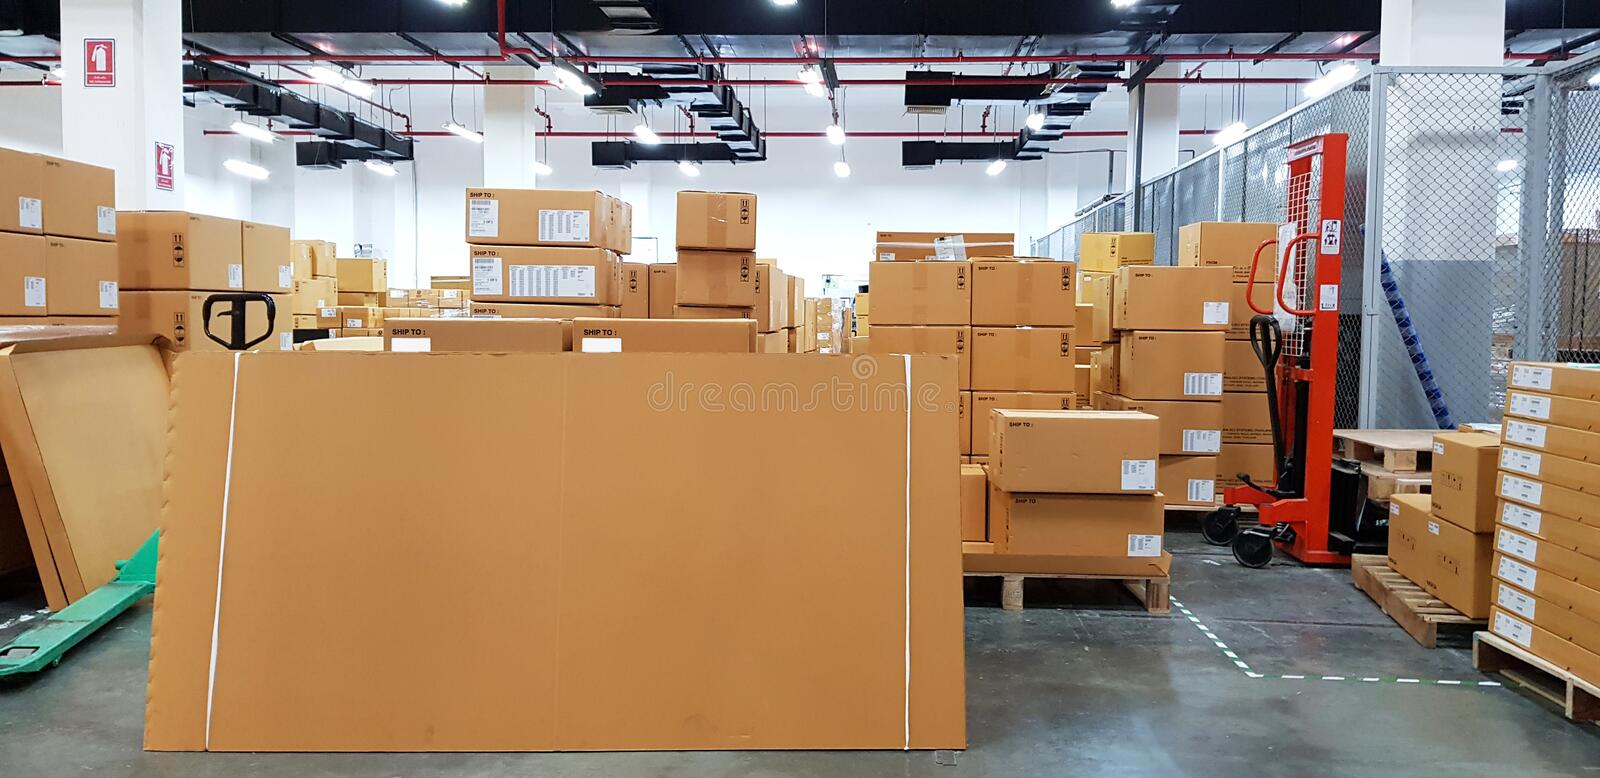 Large warehouse logistic or distribution center. Interior of warehouse with rows of shelves with big boxes.  stock photography